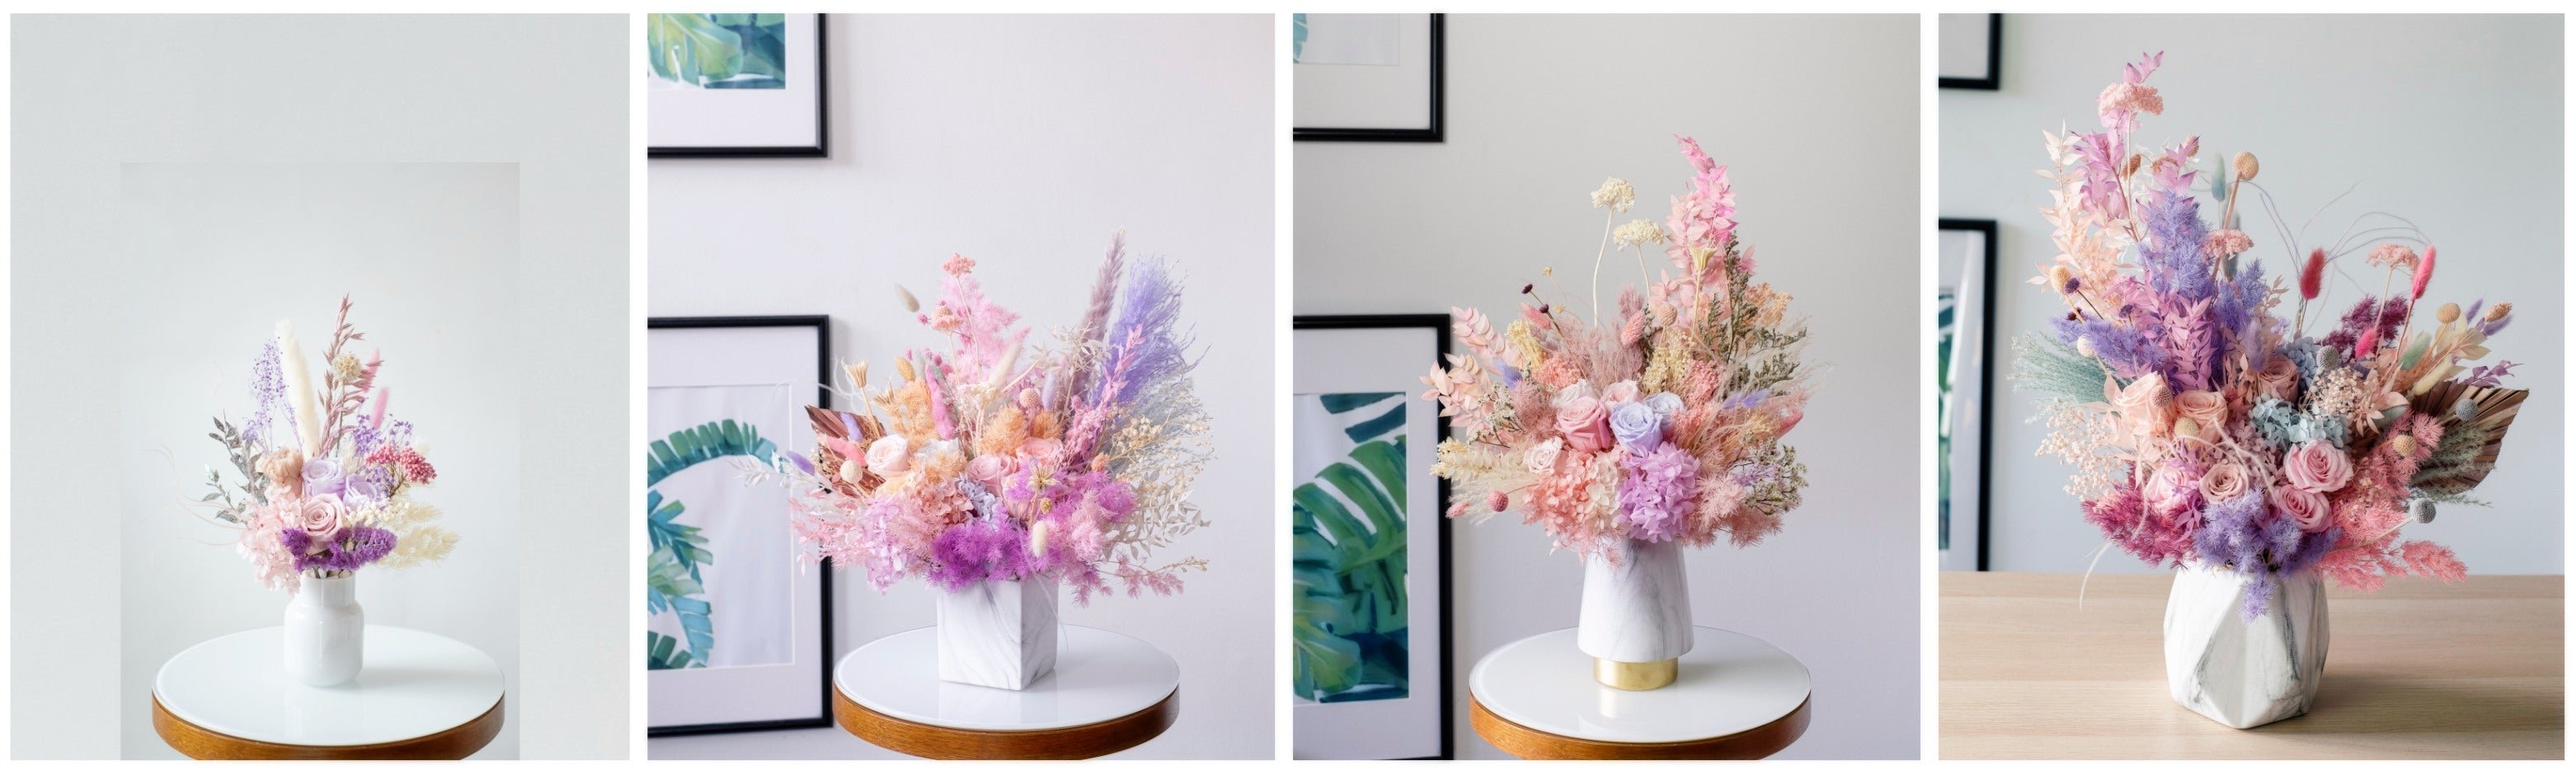 Flower vase arrangement size comparison visual guide